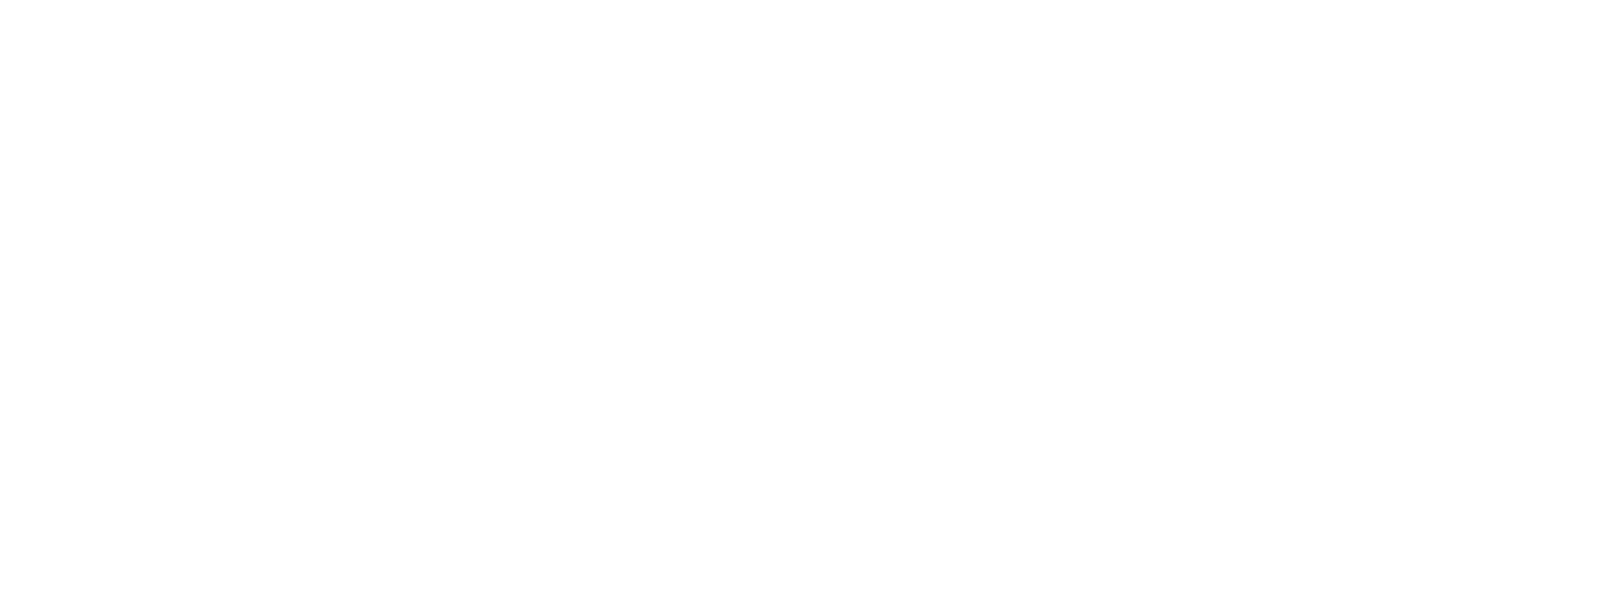 freedom-diagnostics-logo-clear-1600x600